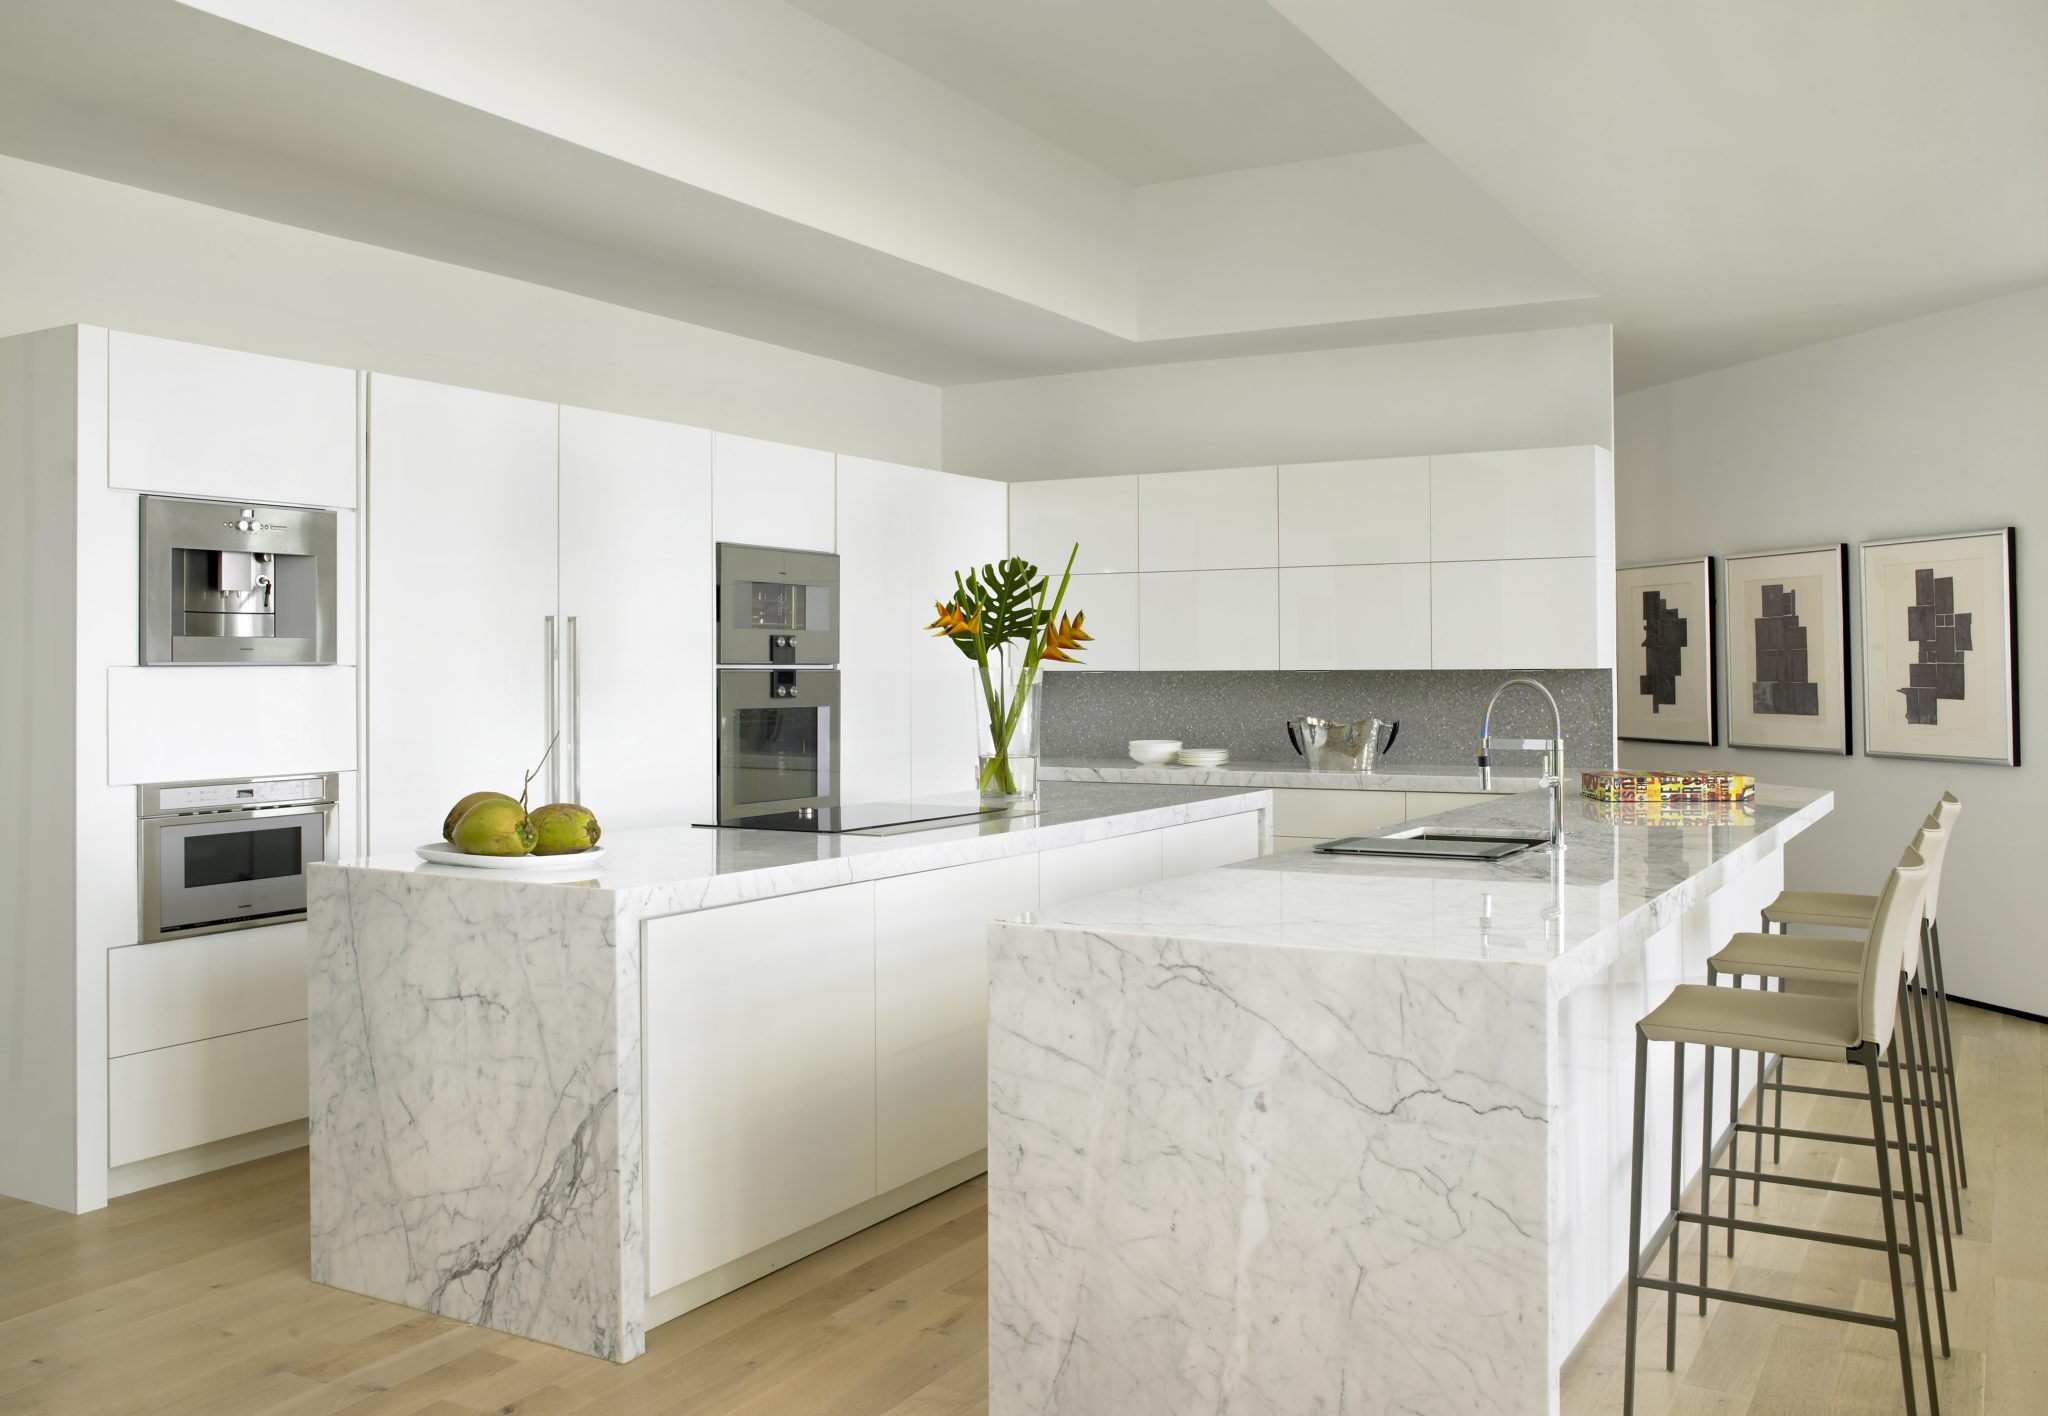 The kitchen's all-white theme—including cabinetry keeps the space as light as a cloud. The Carrara marble countertops and pencil-legged barstools continue the modern scheme. By Michael Wolk Design Associates